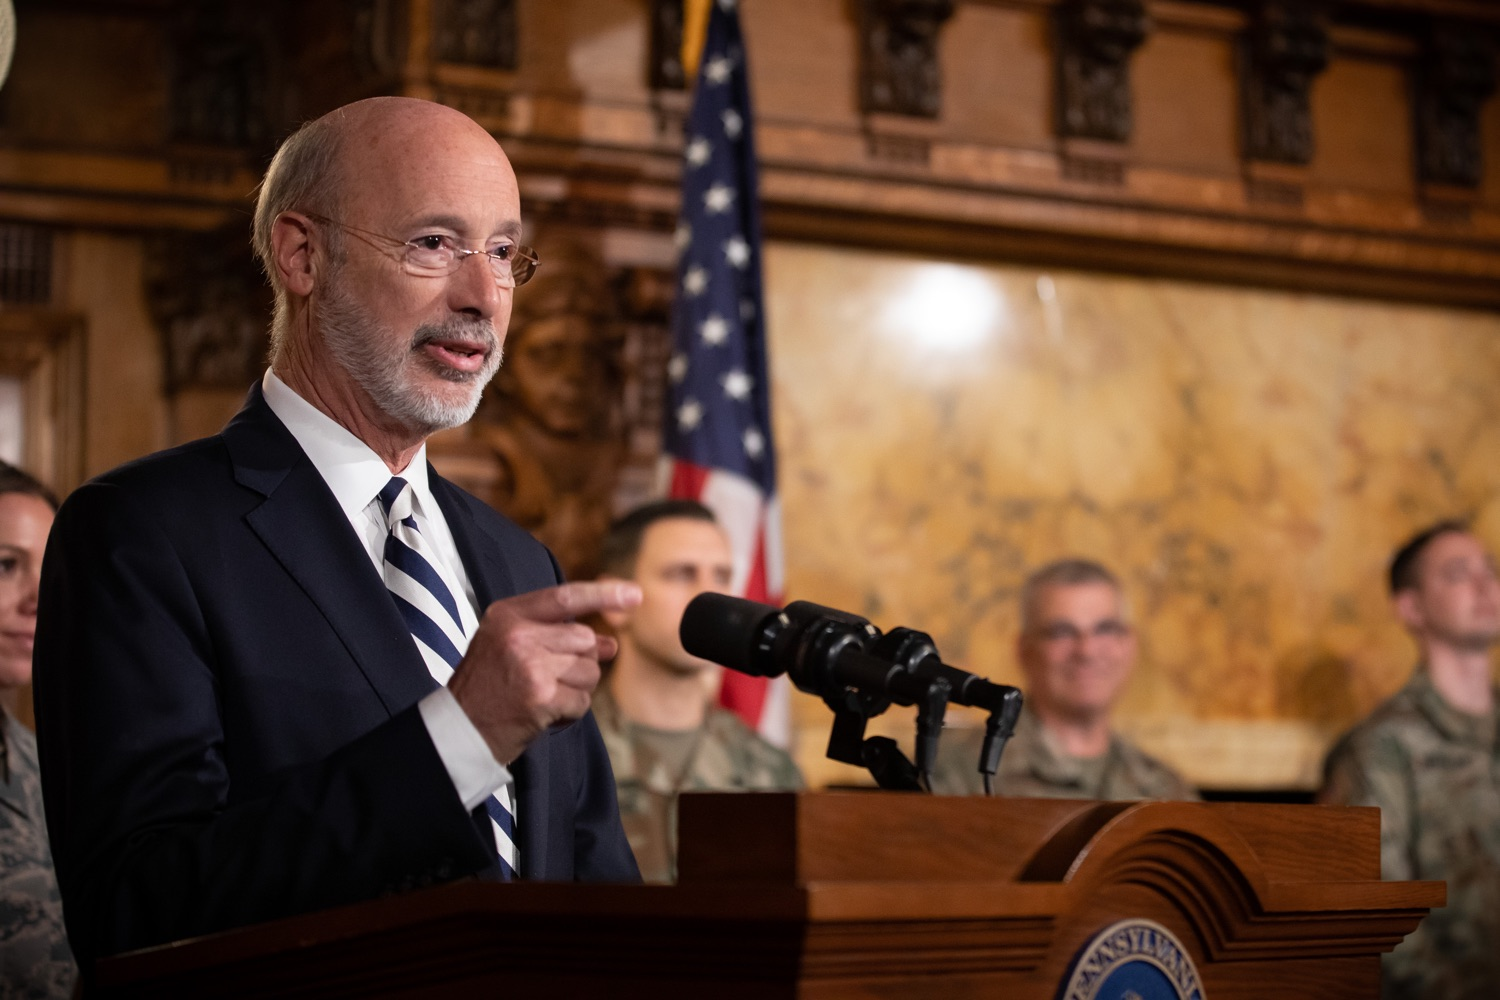 """<a href=""""http://filesource.abacast.com/commonwealthofpa/photo/17563_gov_giBill_dz_014.jpg"""" target=""""_blank"""">⇣Download Photo<br></a>Governor Tom Wolf speaking at the announcement. Governor Tom Wolf, joined by Pennsylvanias adjutant general and head of the Department of Military and Veterans Affairs Maj. Gen. Anthony Carelli, legislators and PA National Guard members and their families, encouraged PA National Guard members to take advantage of the new Military Family Education Program, or PA GI bill, now open for enrollment. Harrisburg, PA Monday, November 4 2019"""